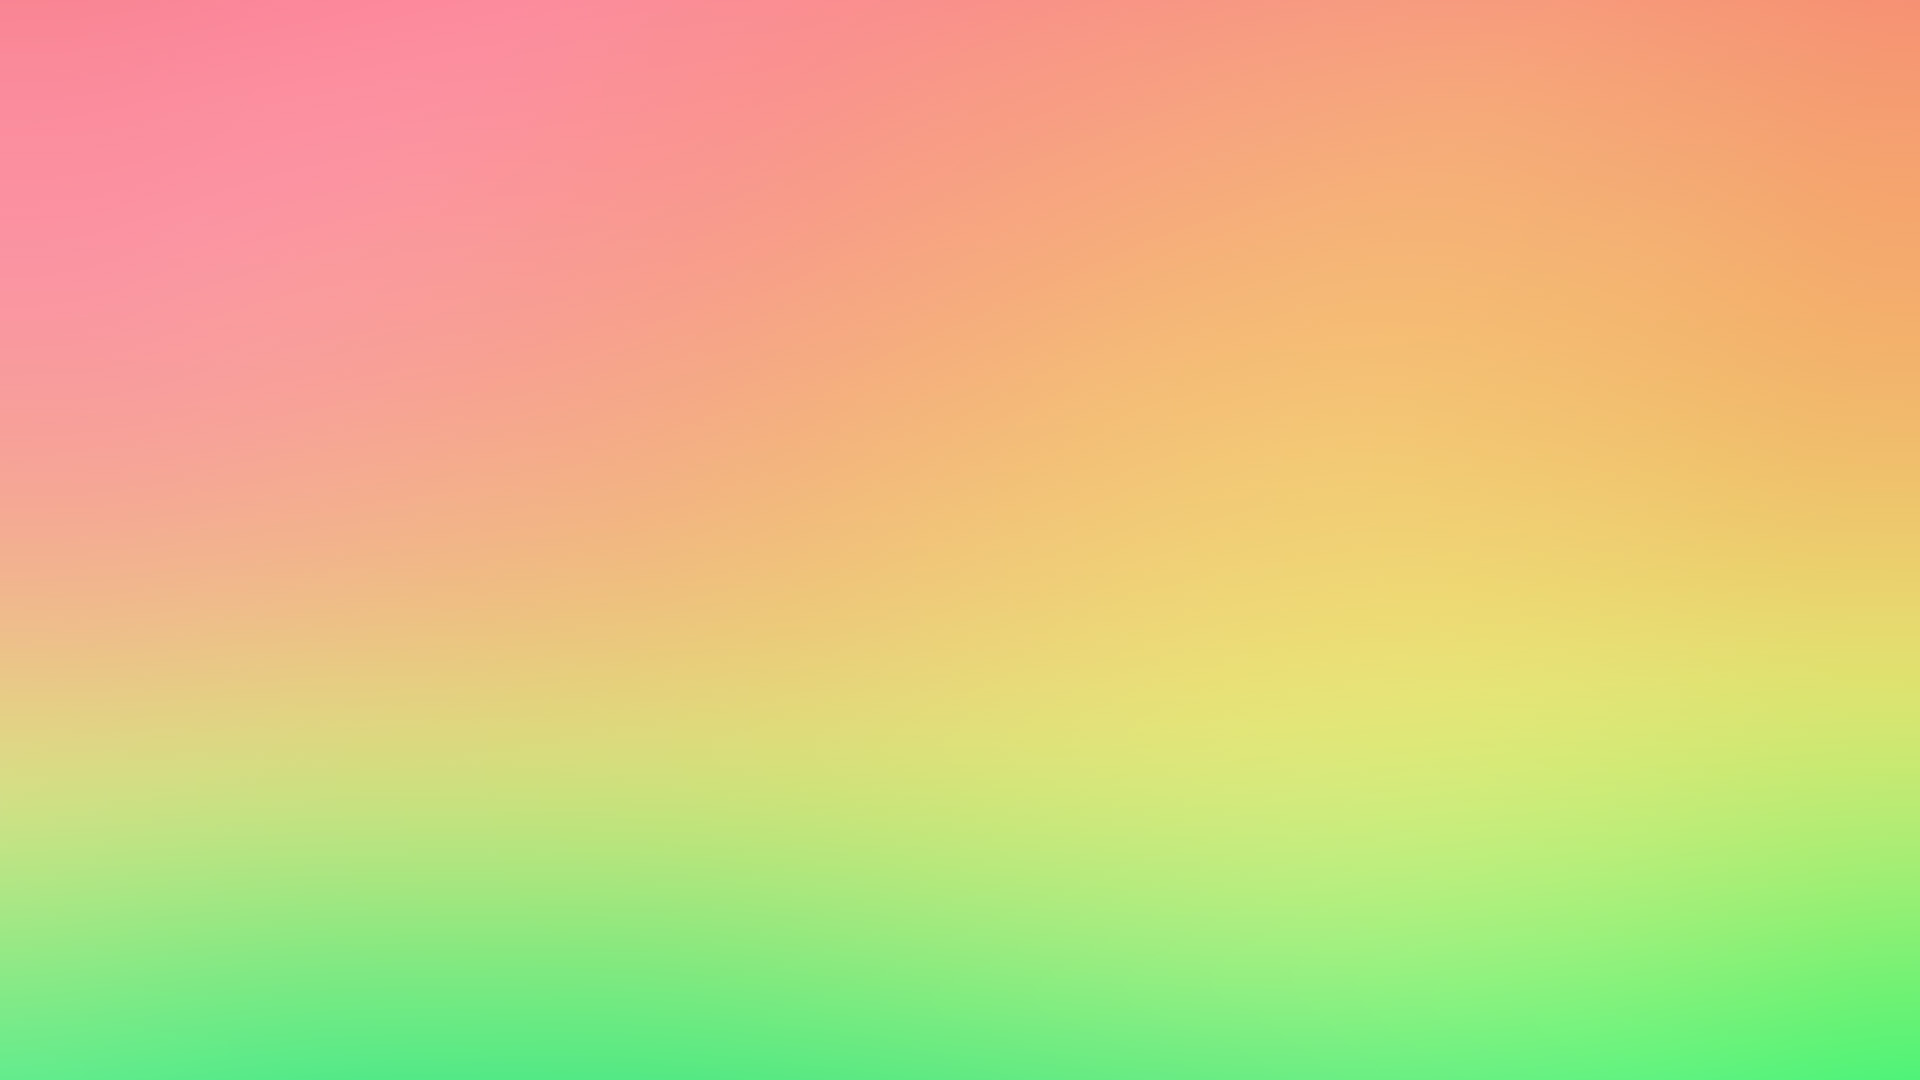 Anime Snow Wallpaper Sf96 Rainbow Red Yellow Green Gradation Blur Papers Co